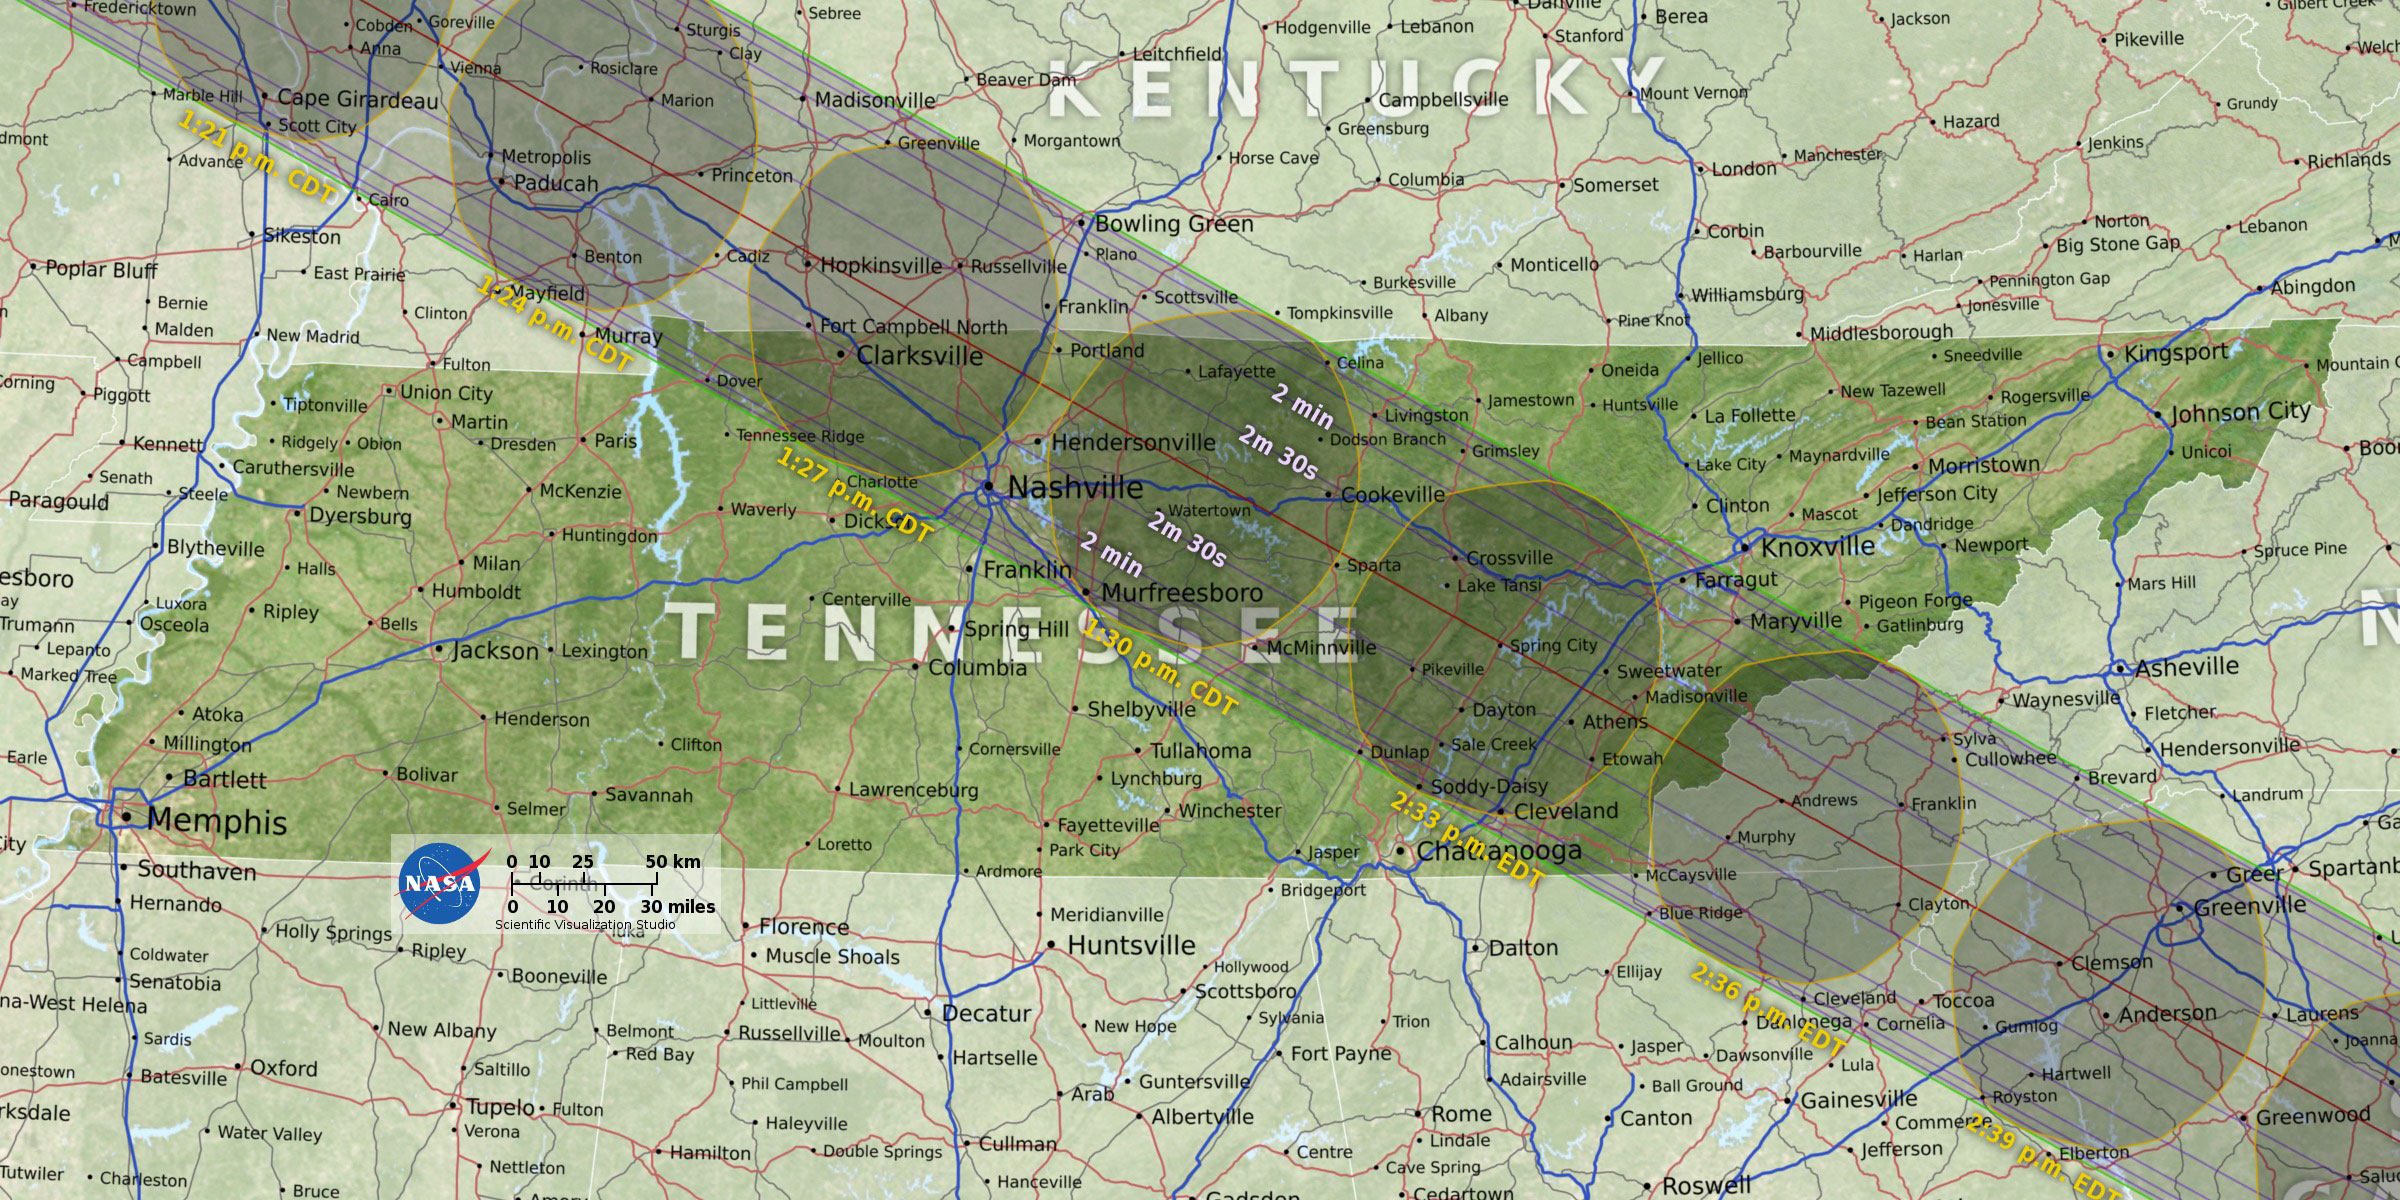 Kentucky Land Map%0A Where to observe the total solar eclipse